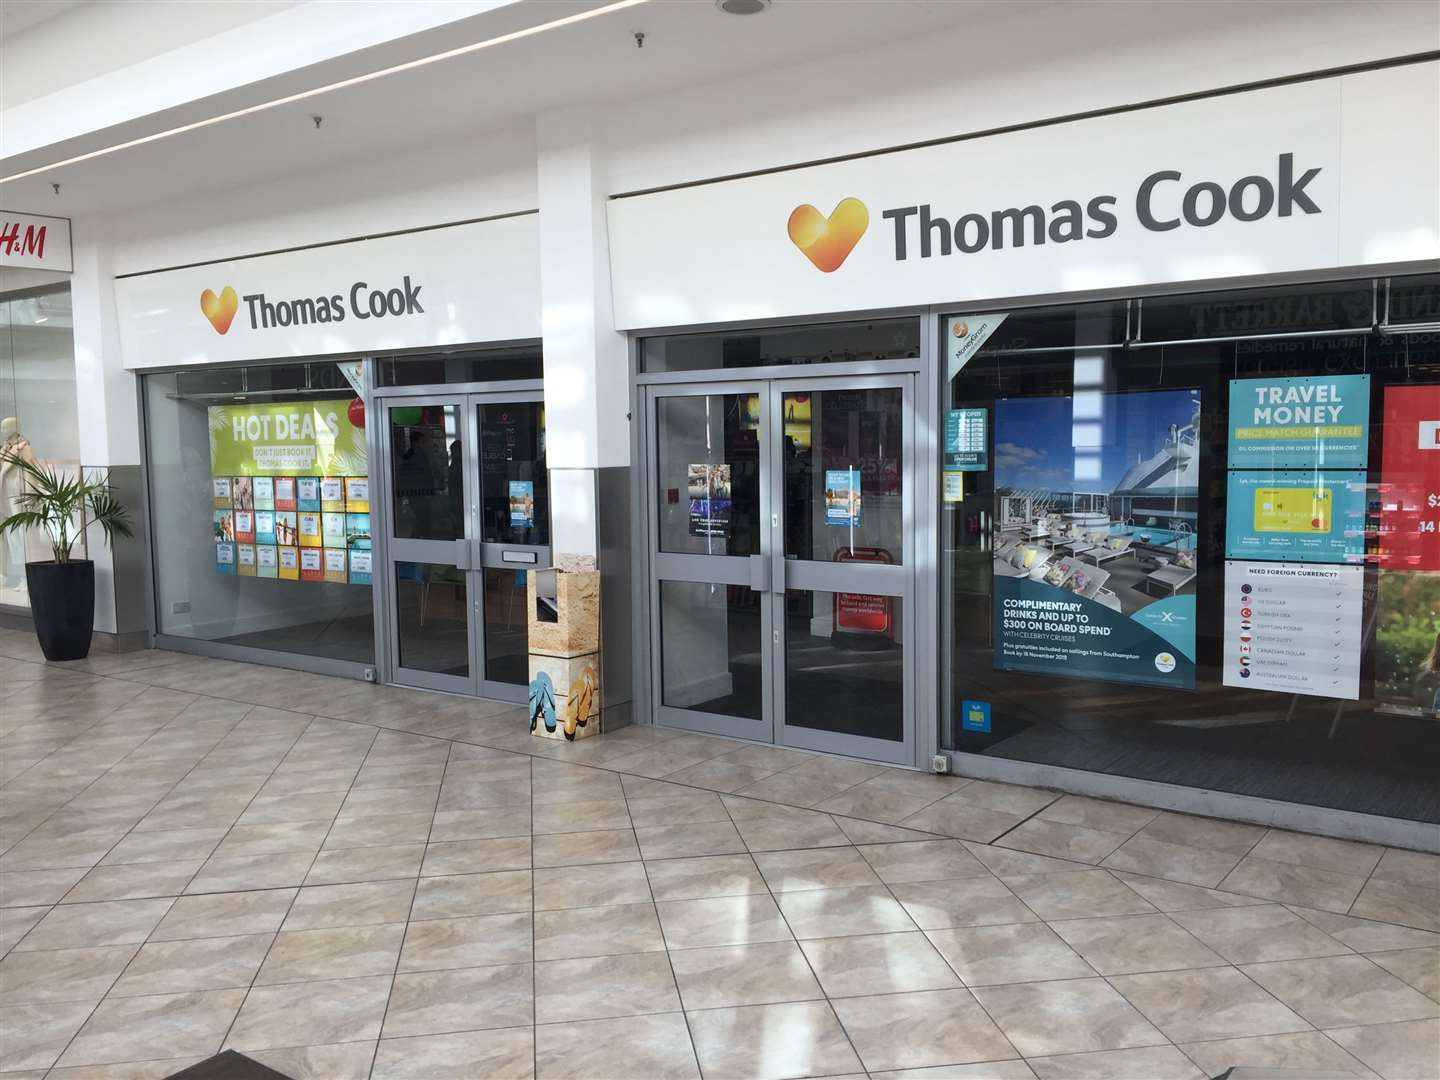 Thomas Cook stores sold to Hays Travel